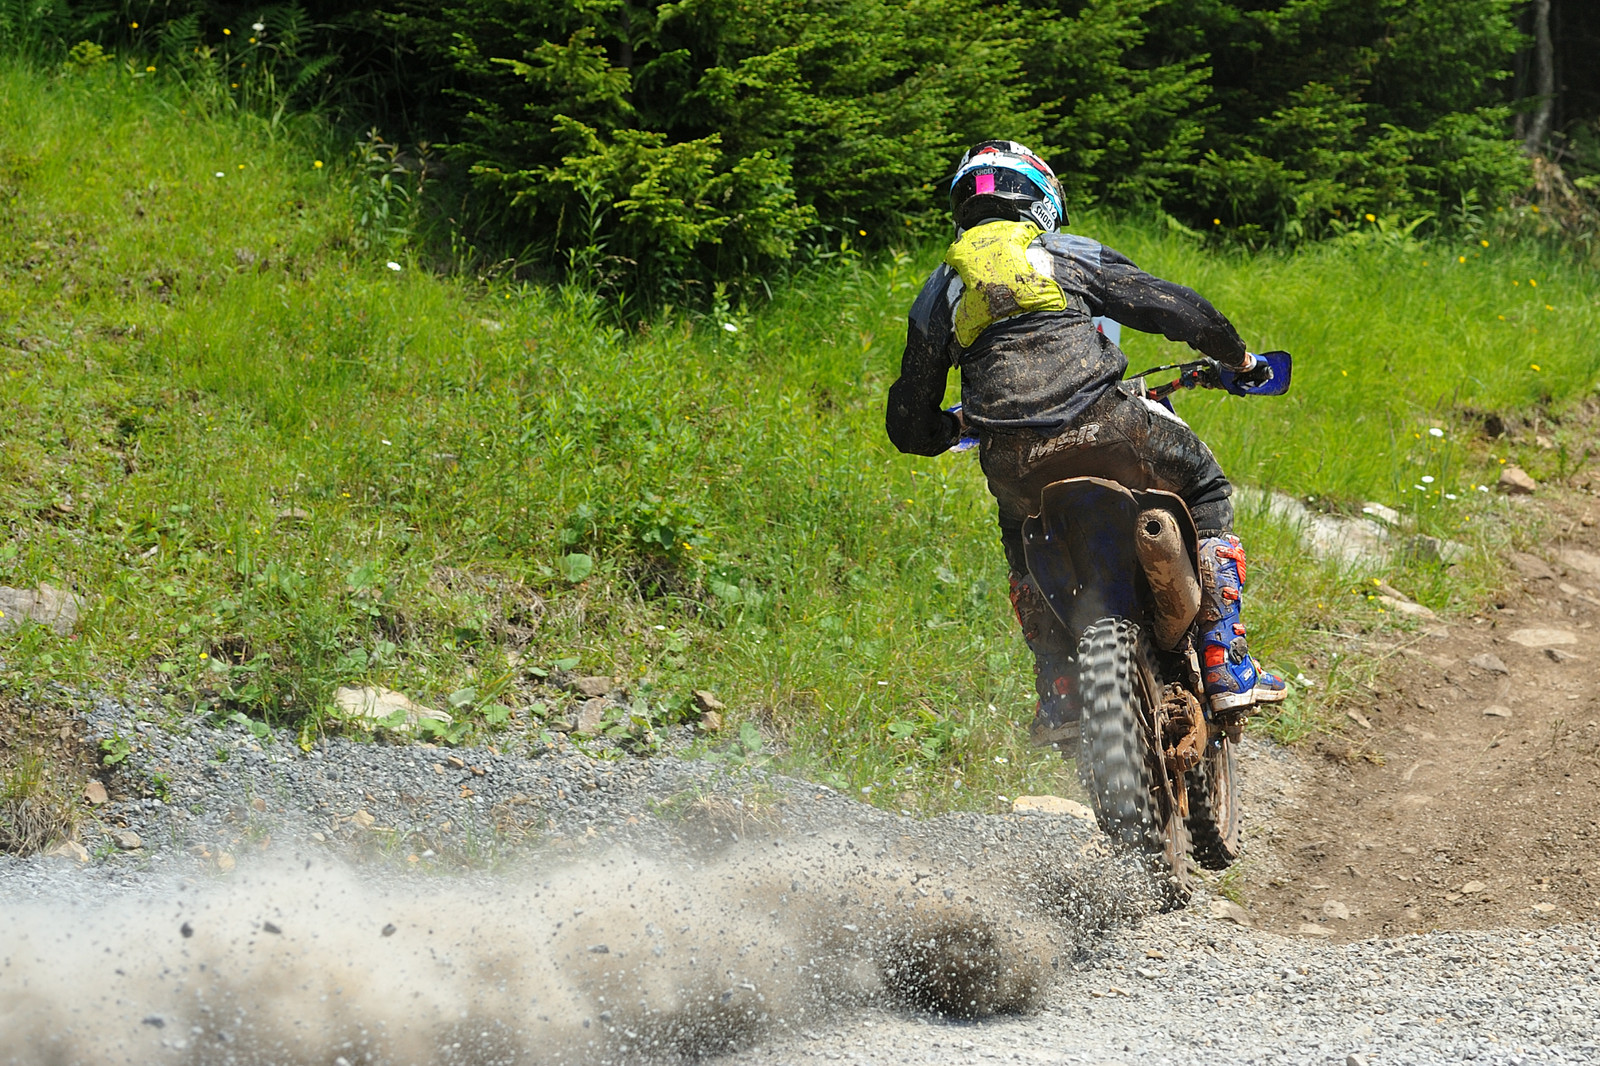 Ricky Russell - Snowshoe GNCC - Motocross Pictures - Vital MX